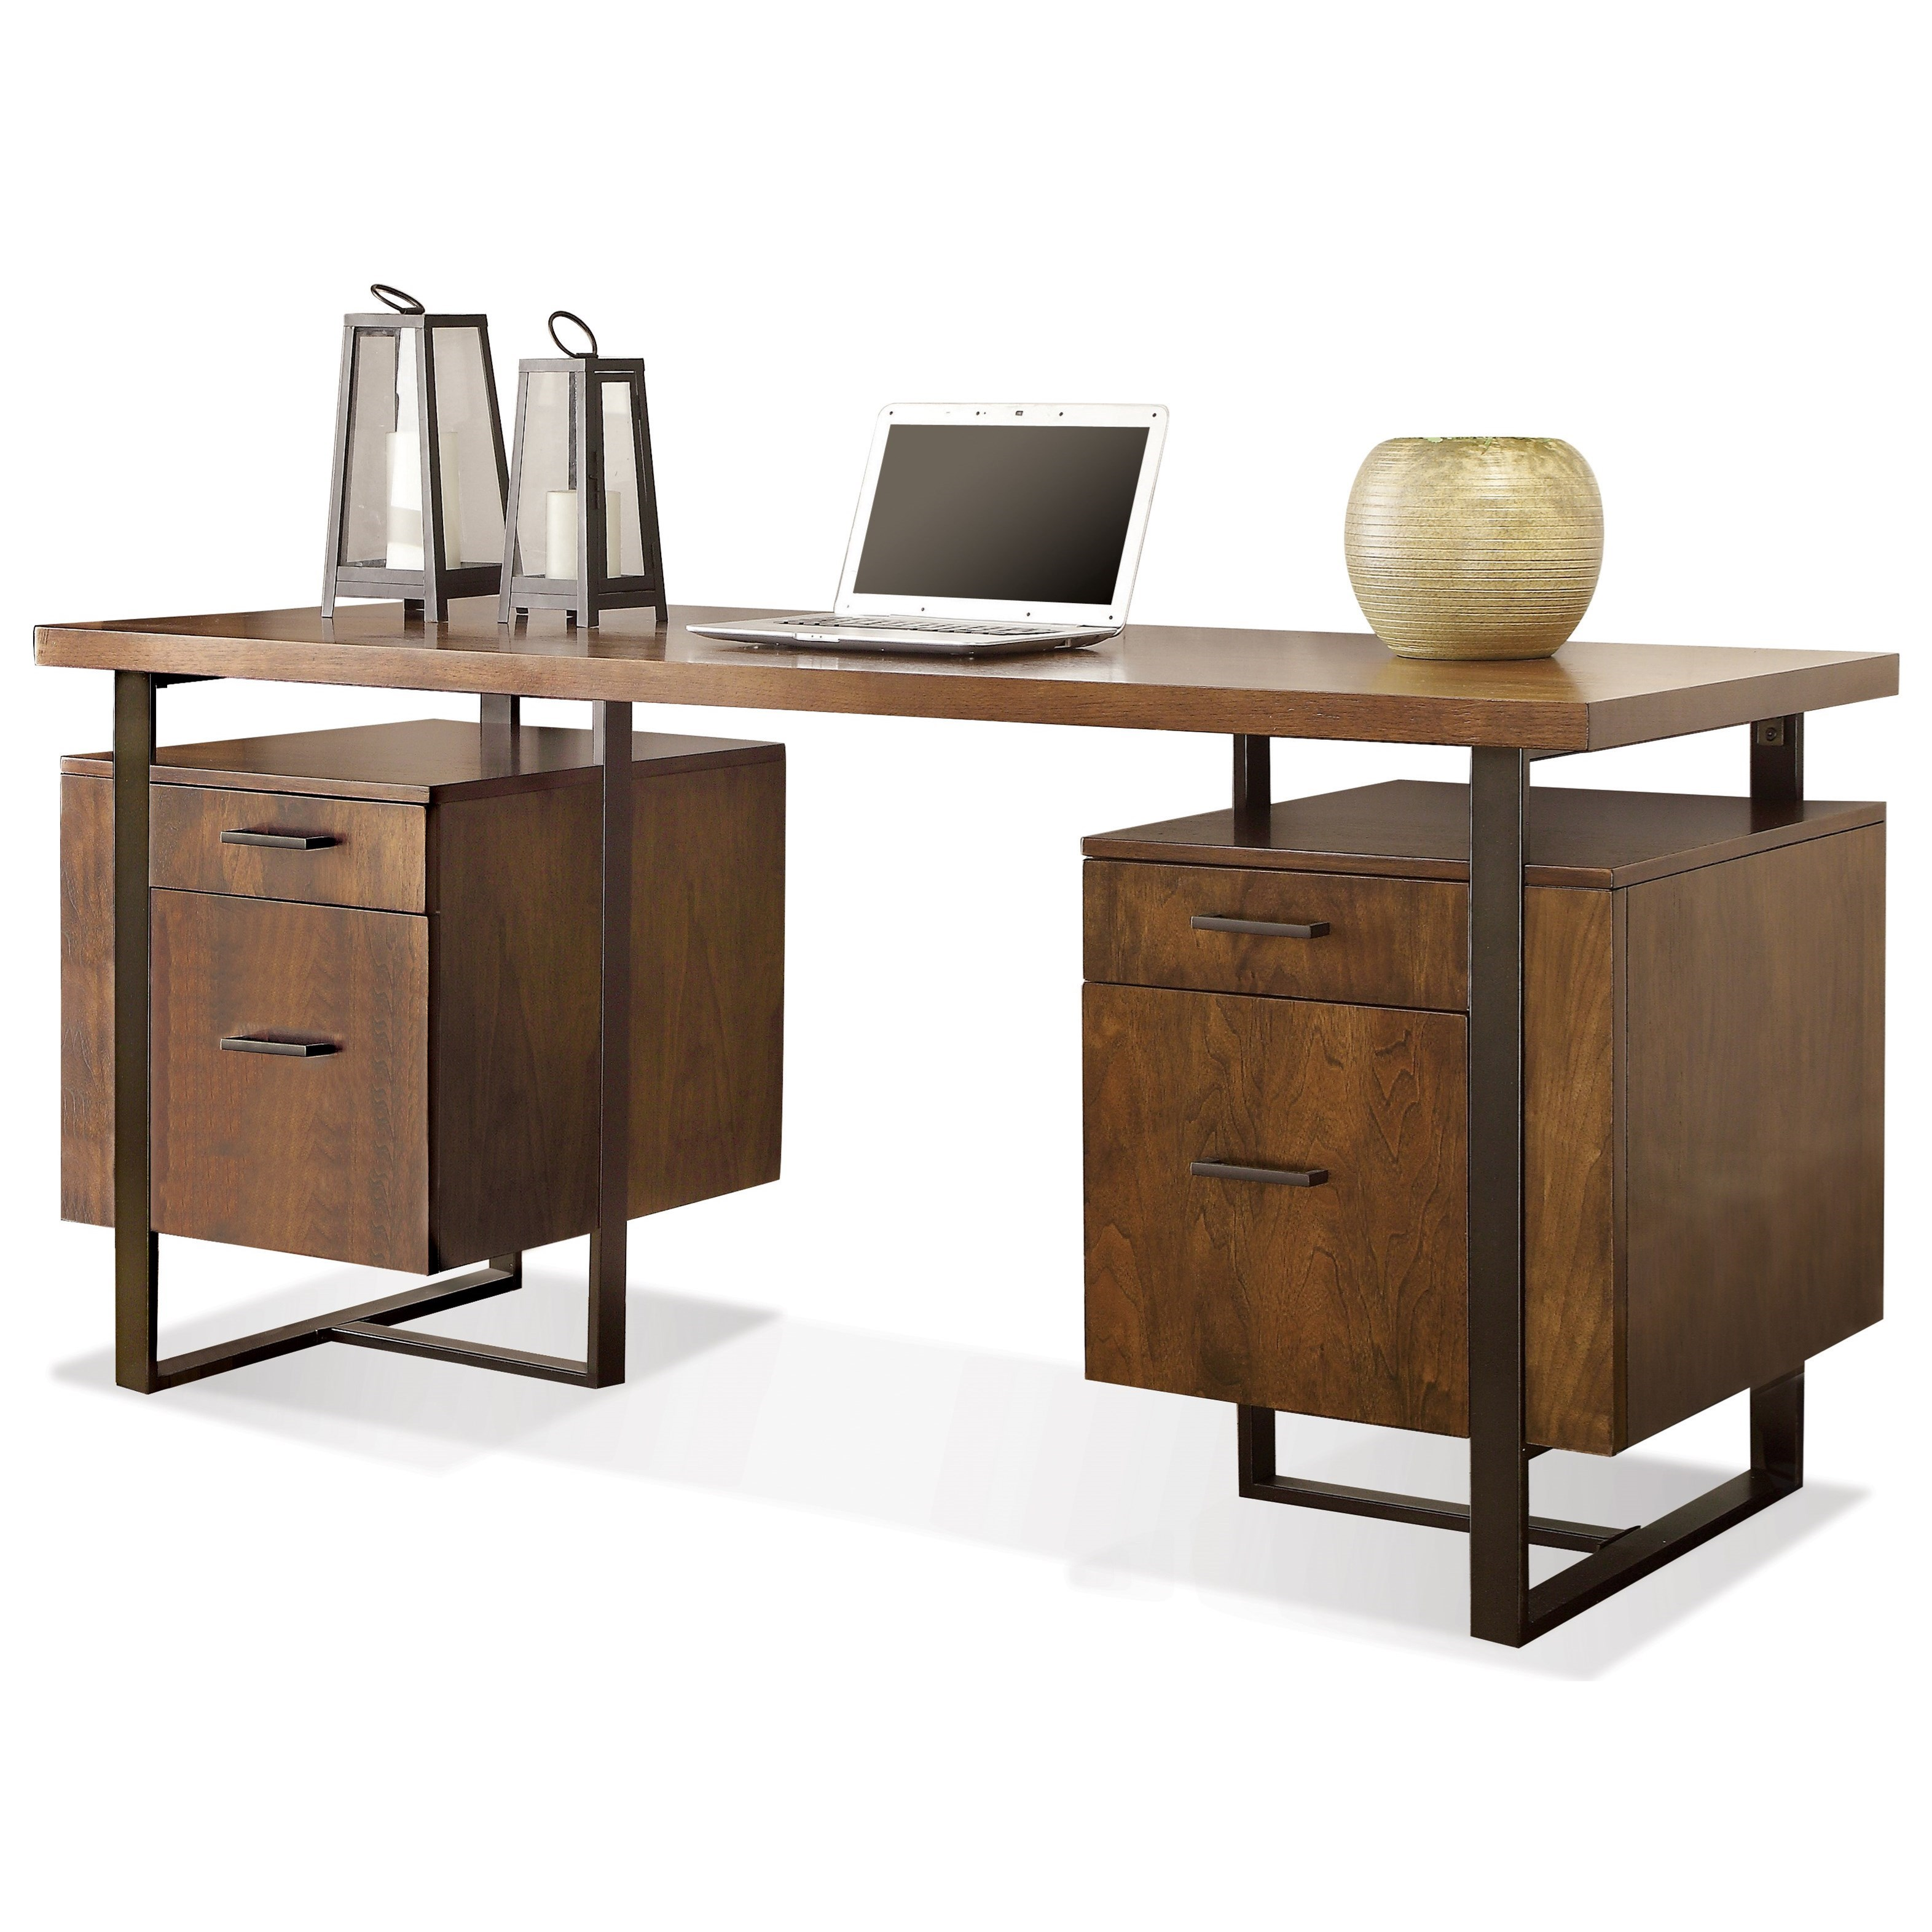 Riverside Furniture Terra Vista 98832 Double Pedestal Desk With File Drawers Dunk Bright